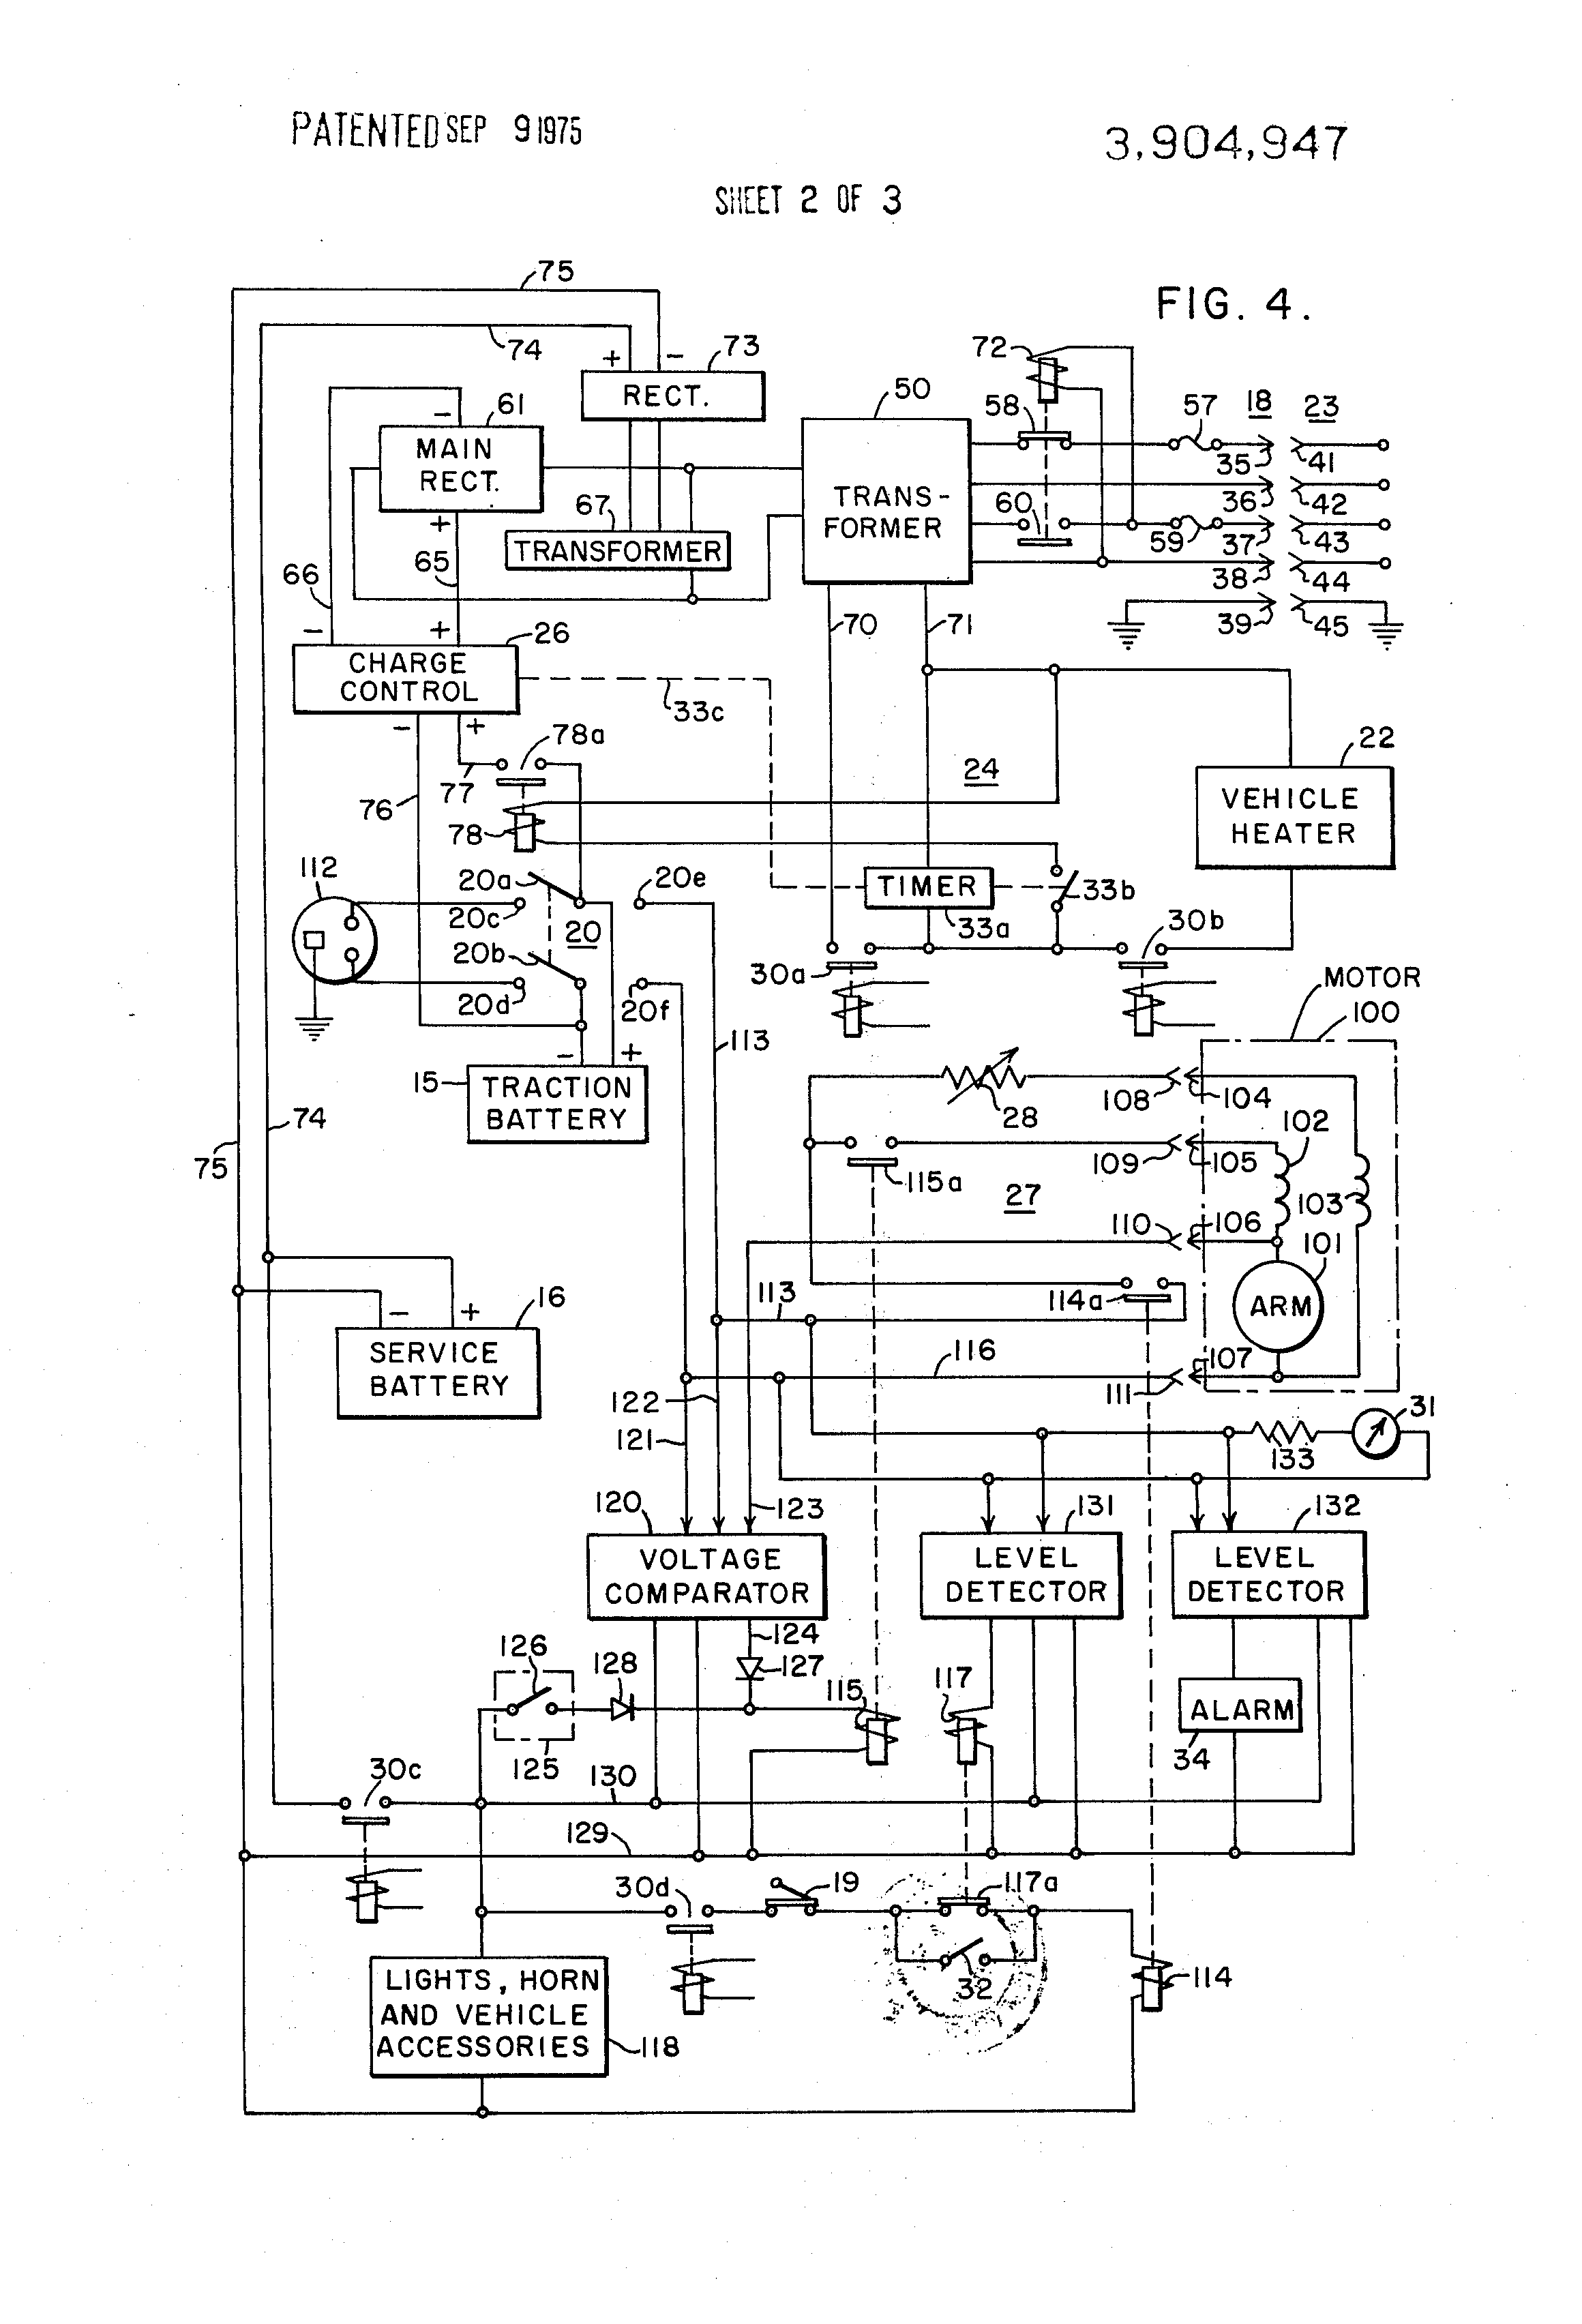 US3904947 2 patent us3904947 vehicle mounted battery charging system for an lester controls wiring diagrams at gsmportal.co